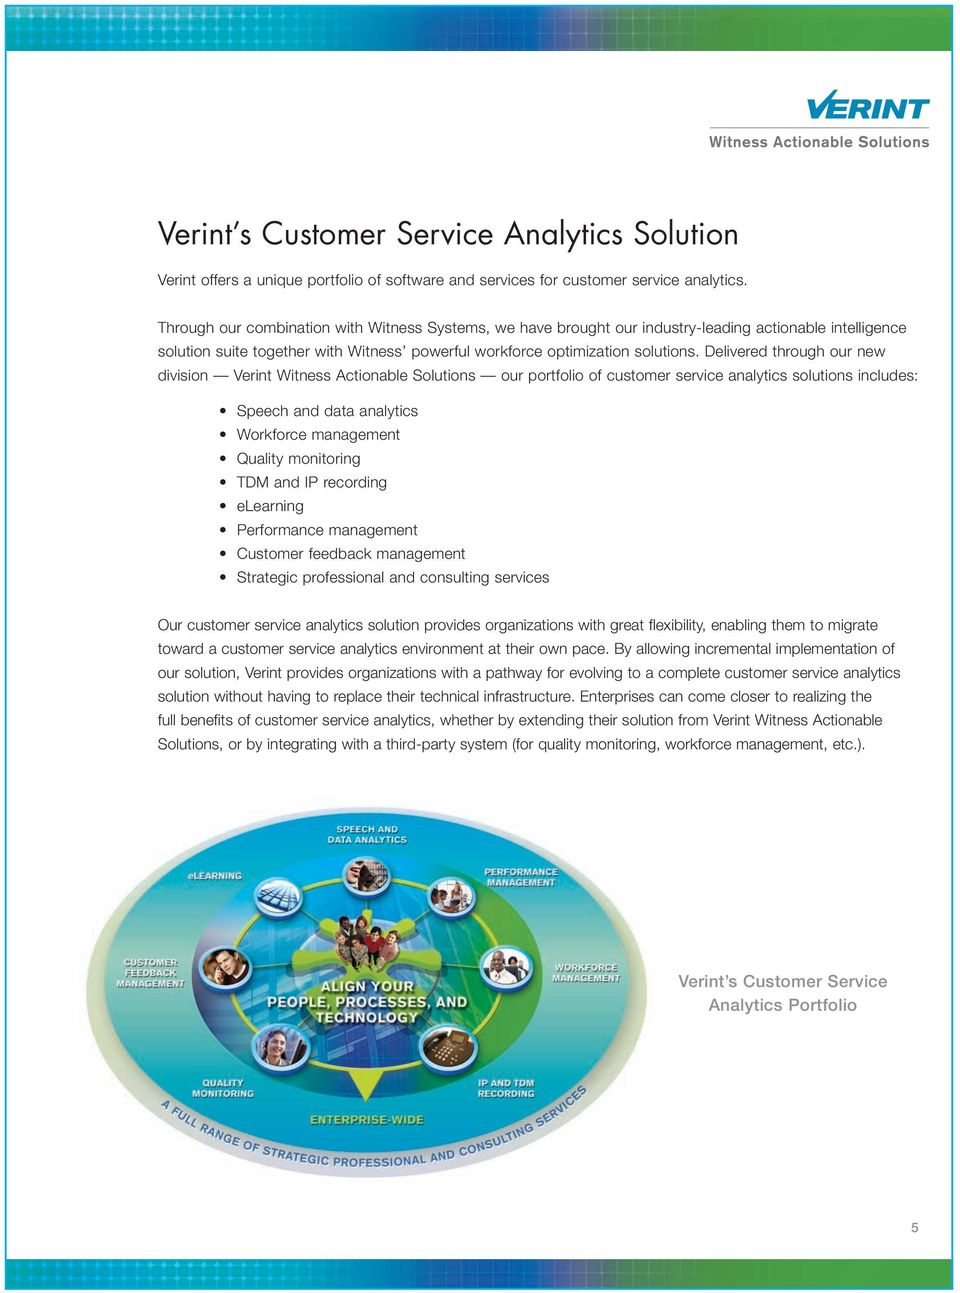 Delivered through our new division Verint Witness Actionable Solutions our portfolio of customer service analytics solutions includes: Speech and data analytics Workforce management Quality